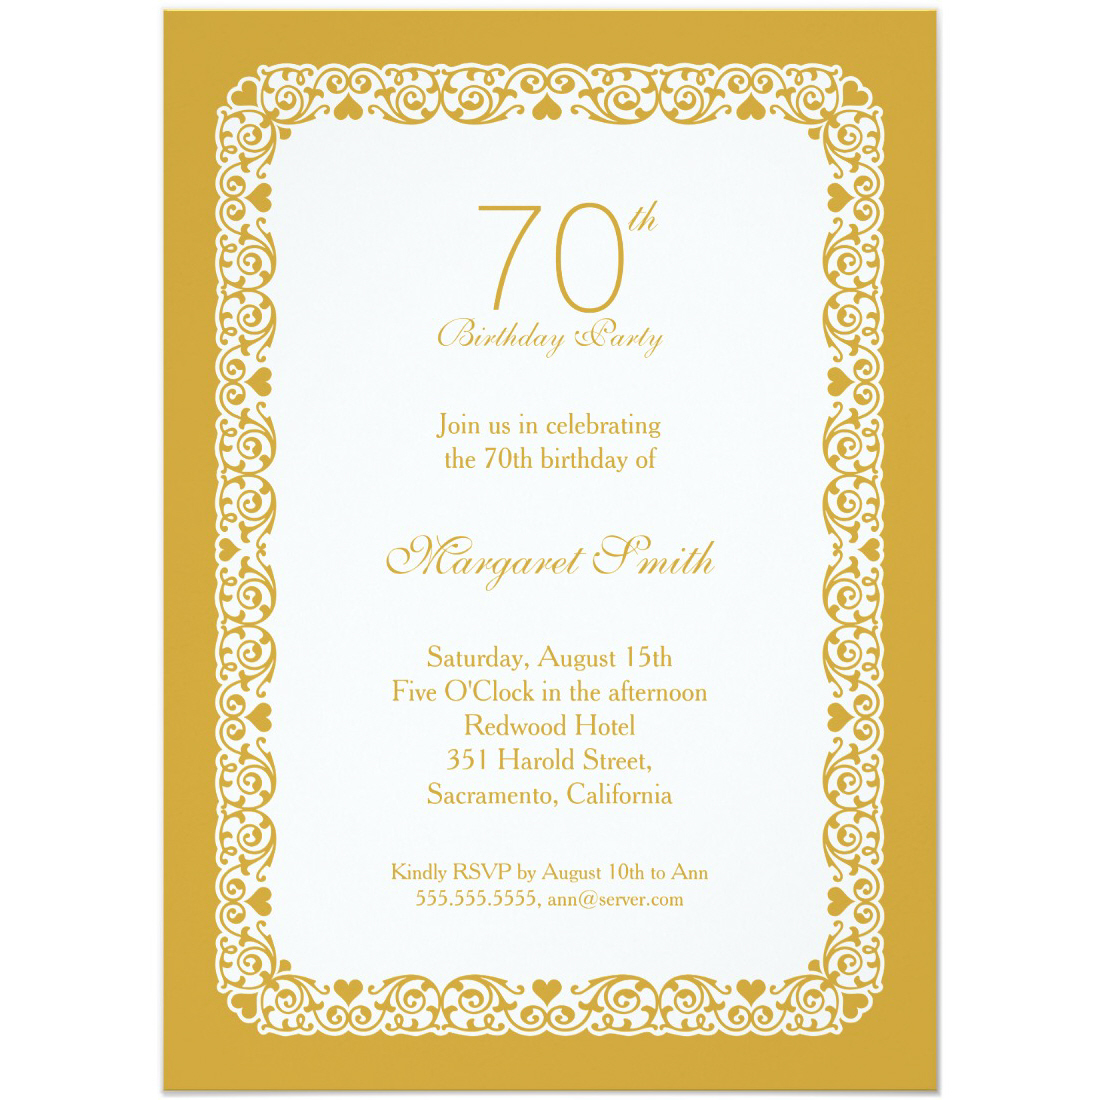 Elegant personalized 70th birthday party invitations